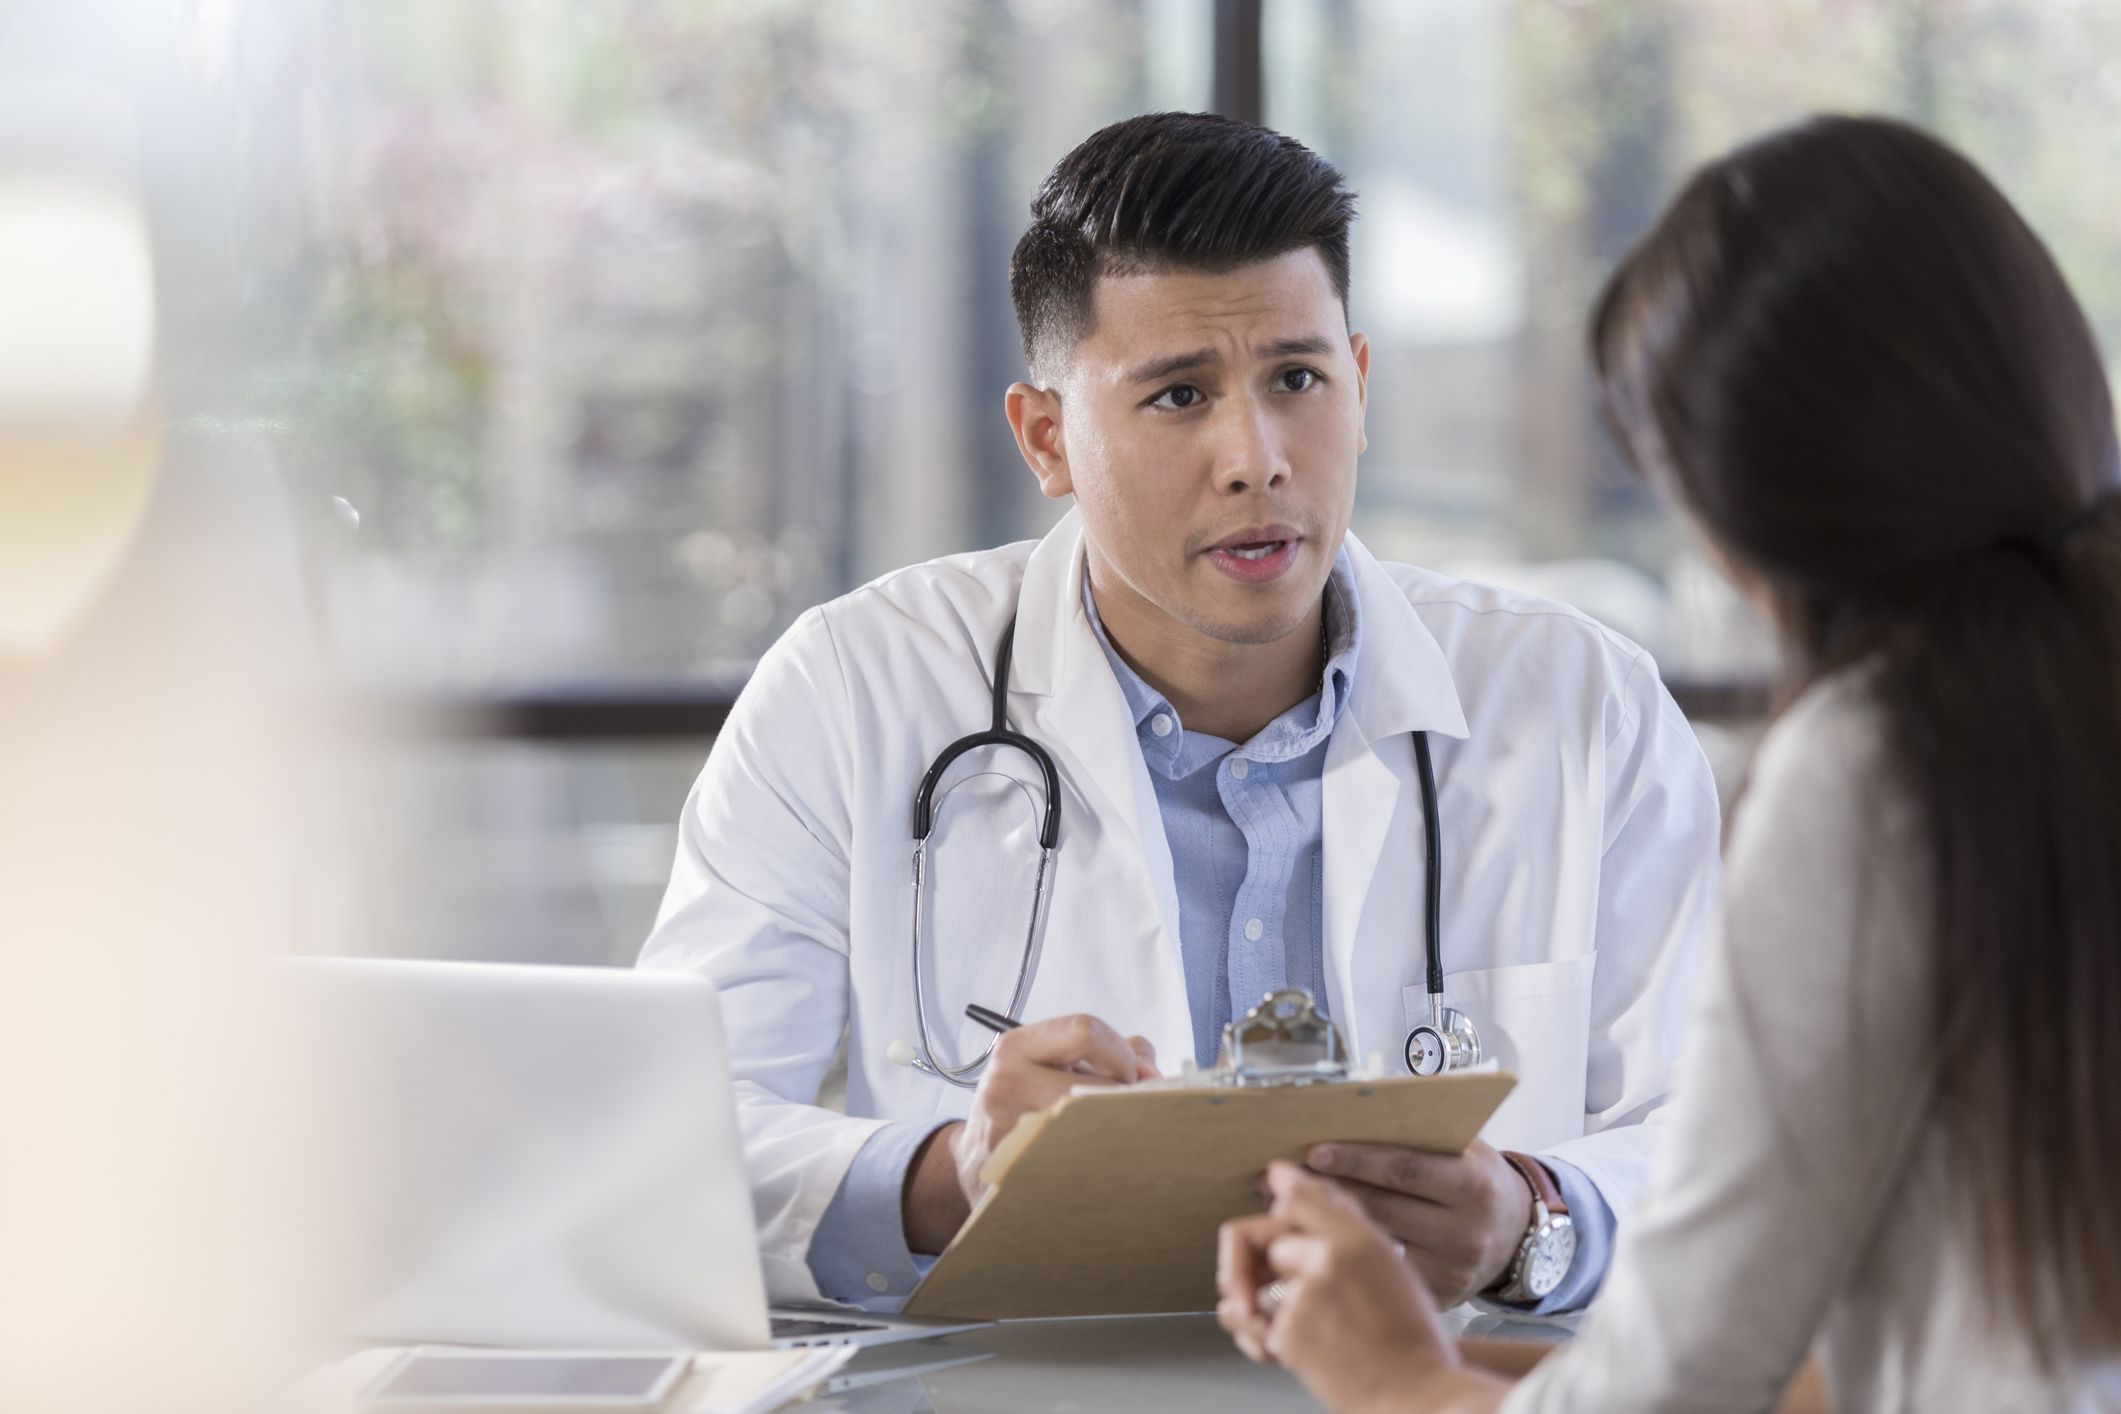 editorial board member Pediatric Ethicscope: the Journal of Pediatric Bioethics and Pediatric Ethics Physician discusses diagnosis with patient's parents.